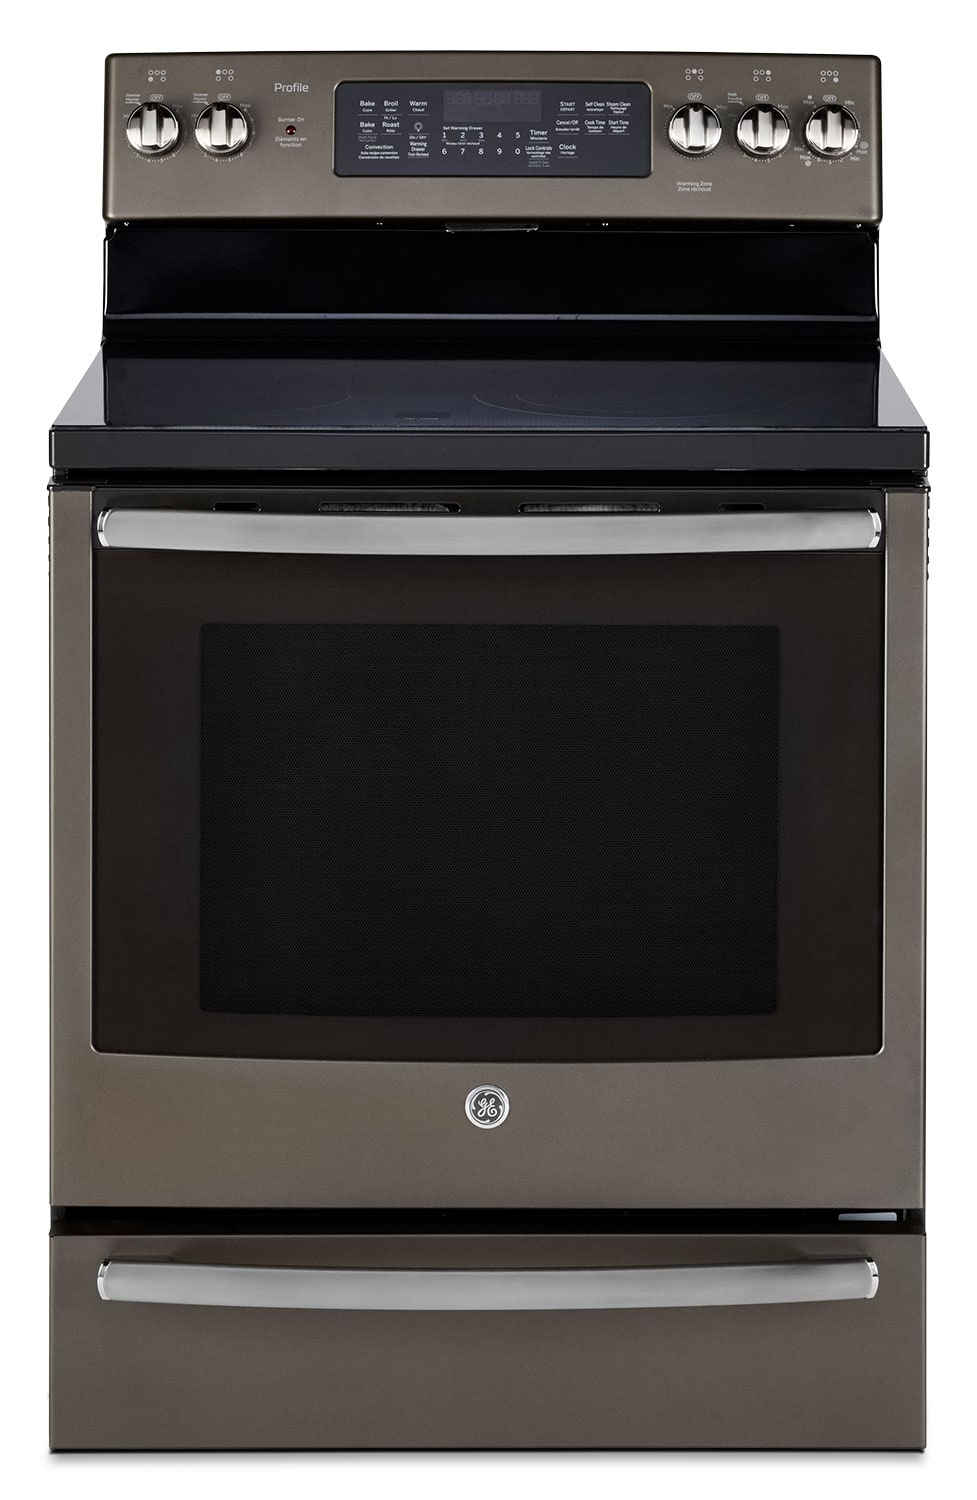 Cooking Products - GE 6.2 Cu. Ft. Freestanding Electric Convection Range – PCB940EKES